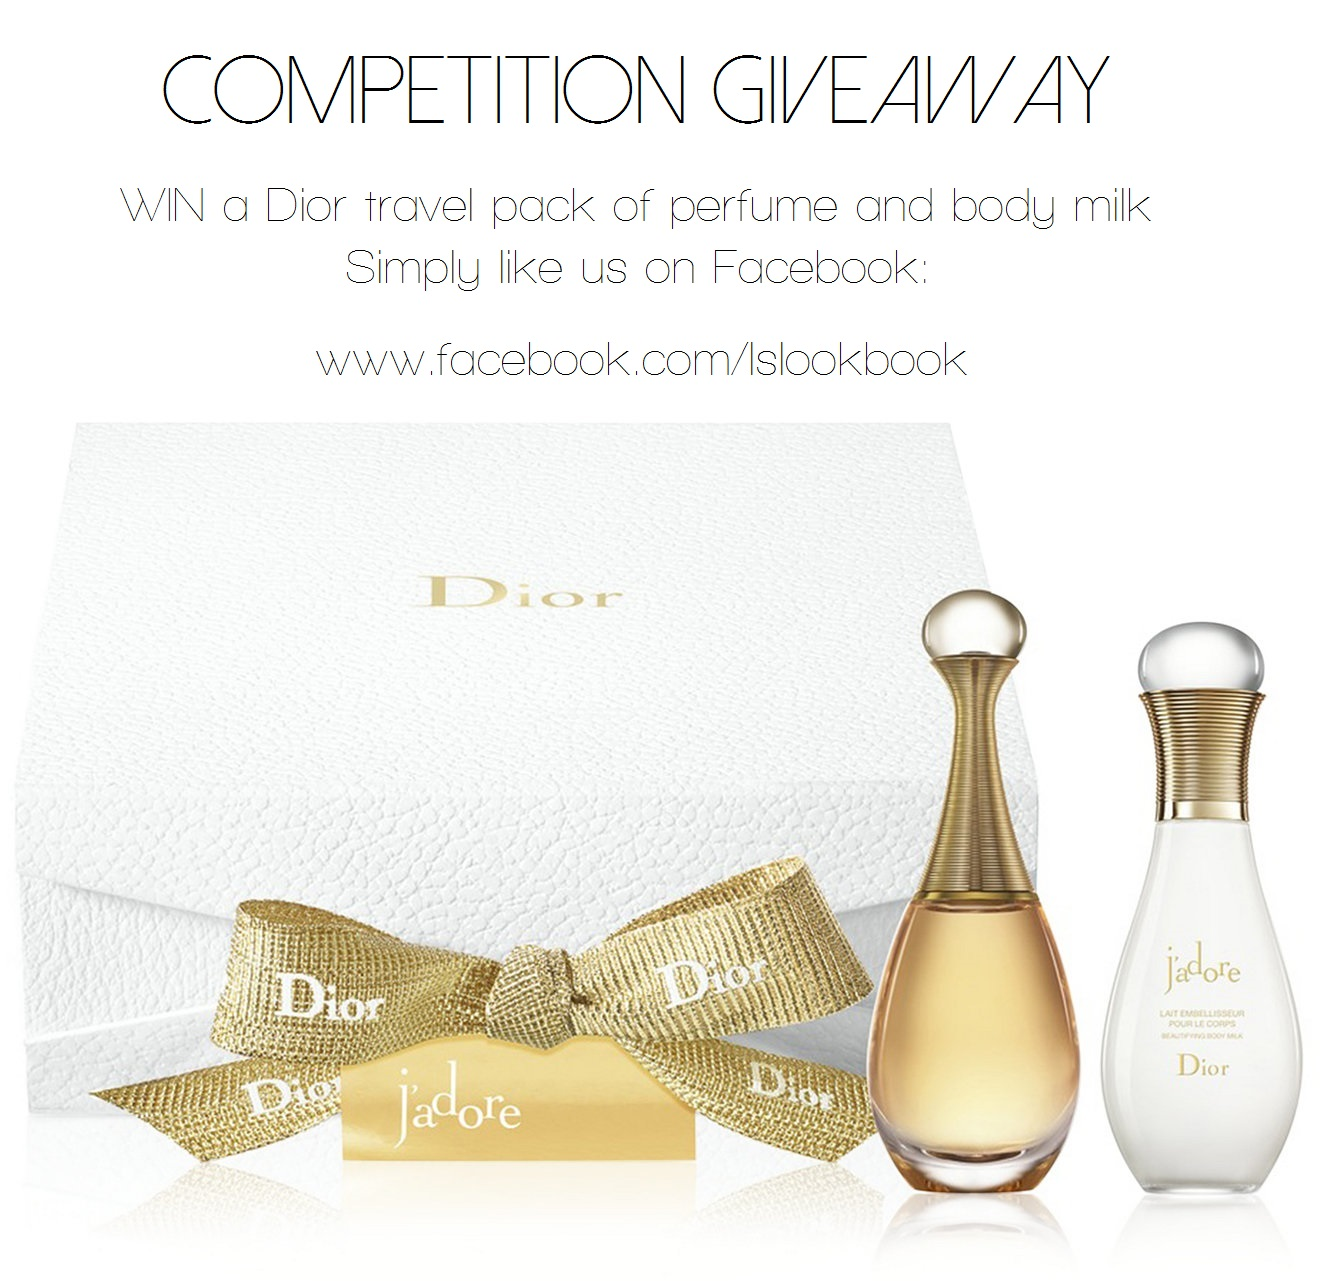 Dior Travel Gift Pack Perfume Beautifying Body Milk Free Giveaway Competition Contest